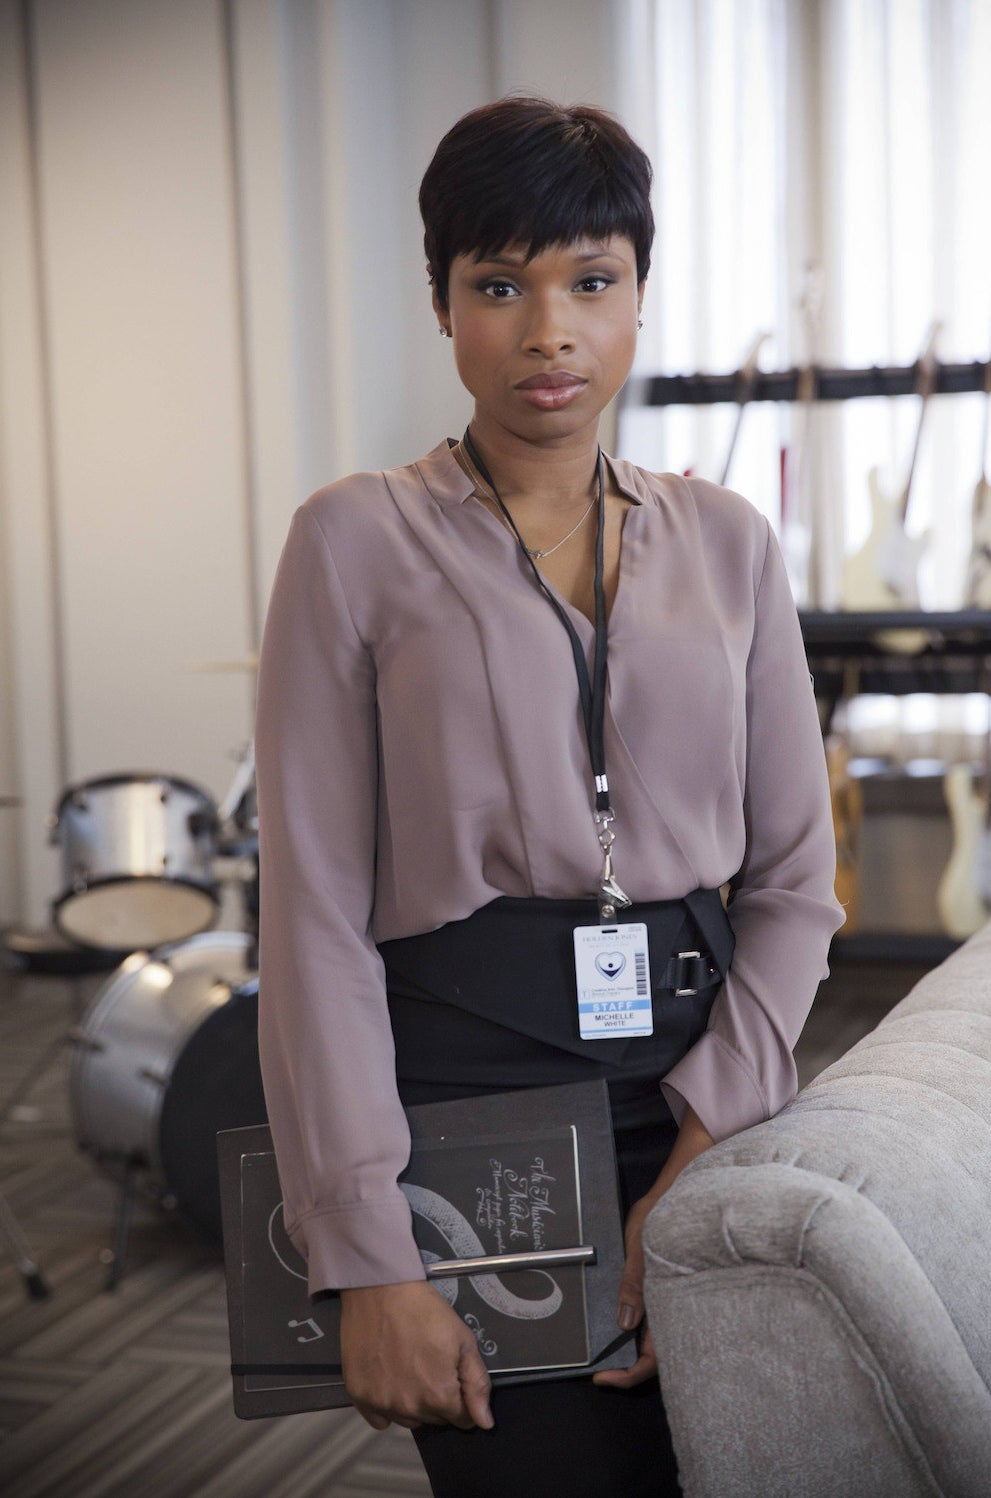 Jennifer Hudson as Michelle White